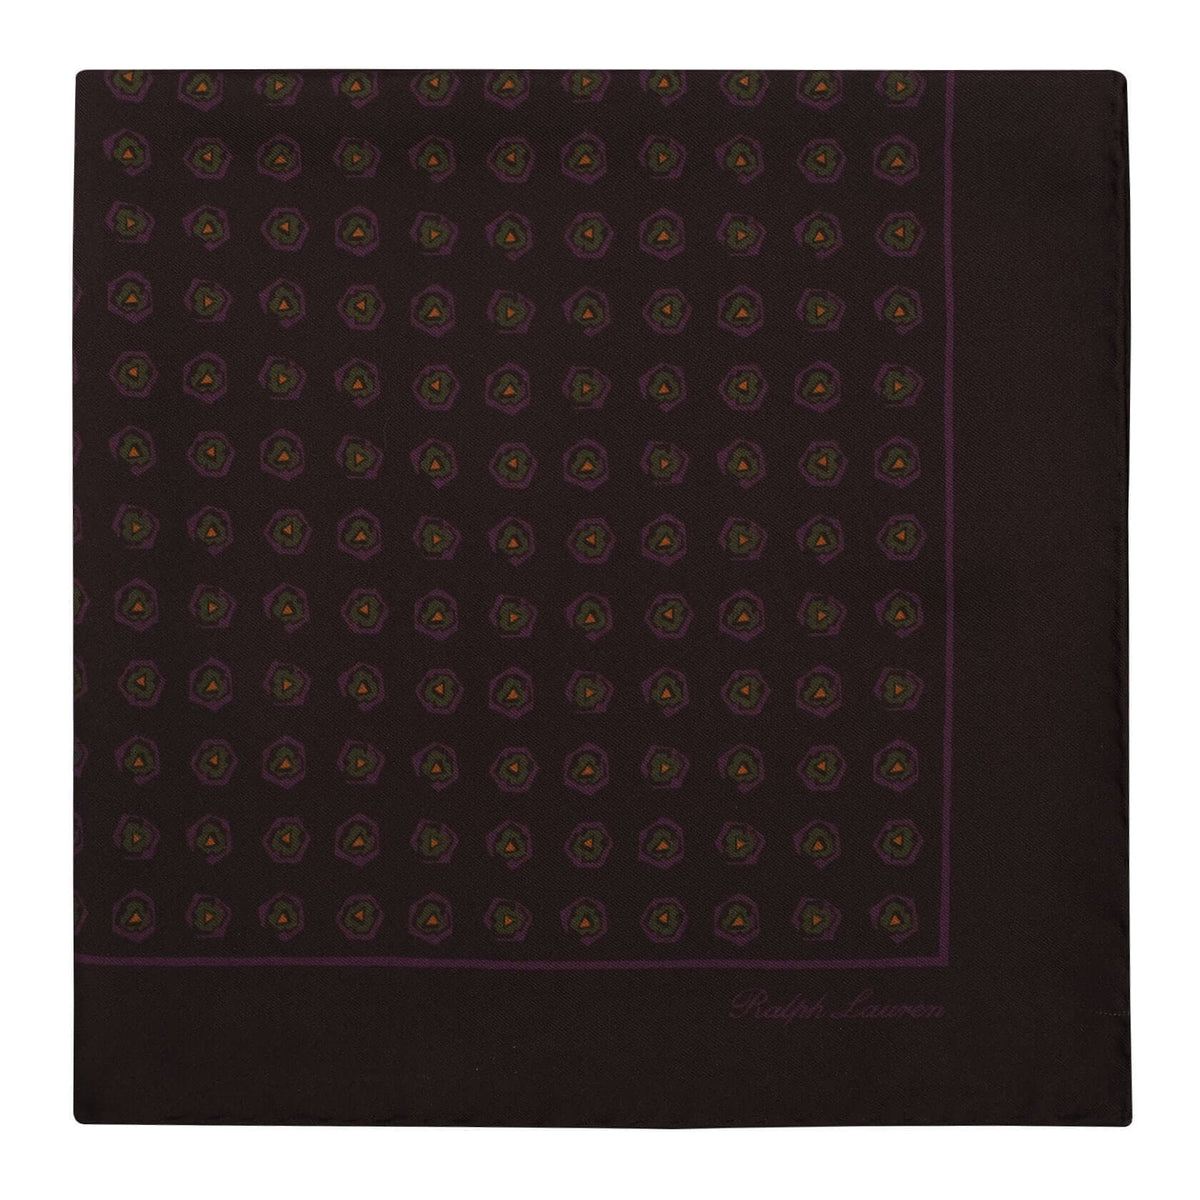 Ralph Lauren Mini Floral Pattern Foulard Pocket Square - Brown